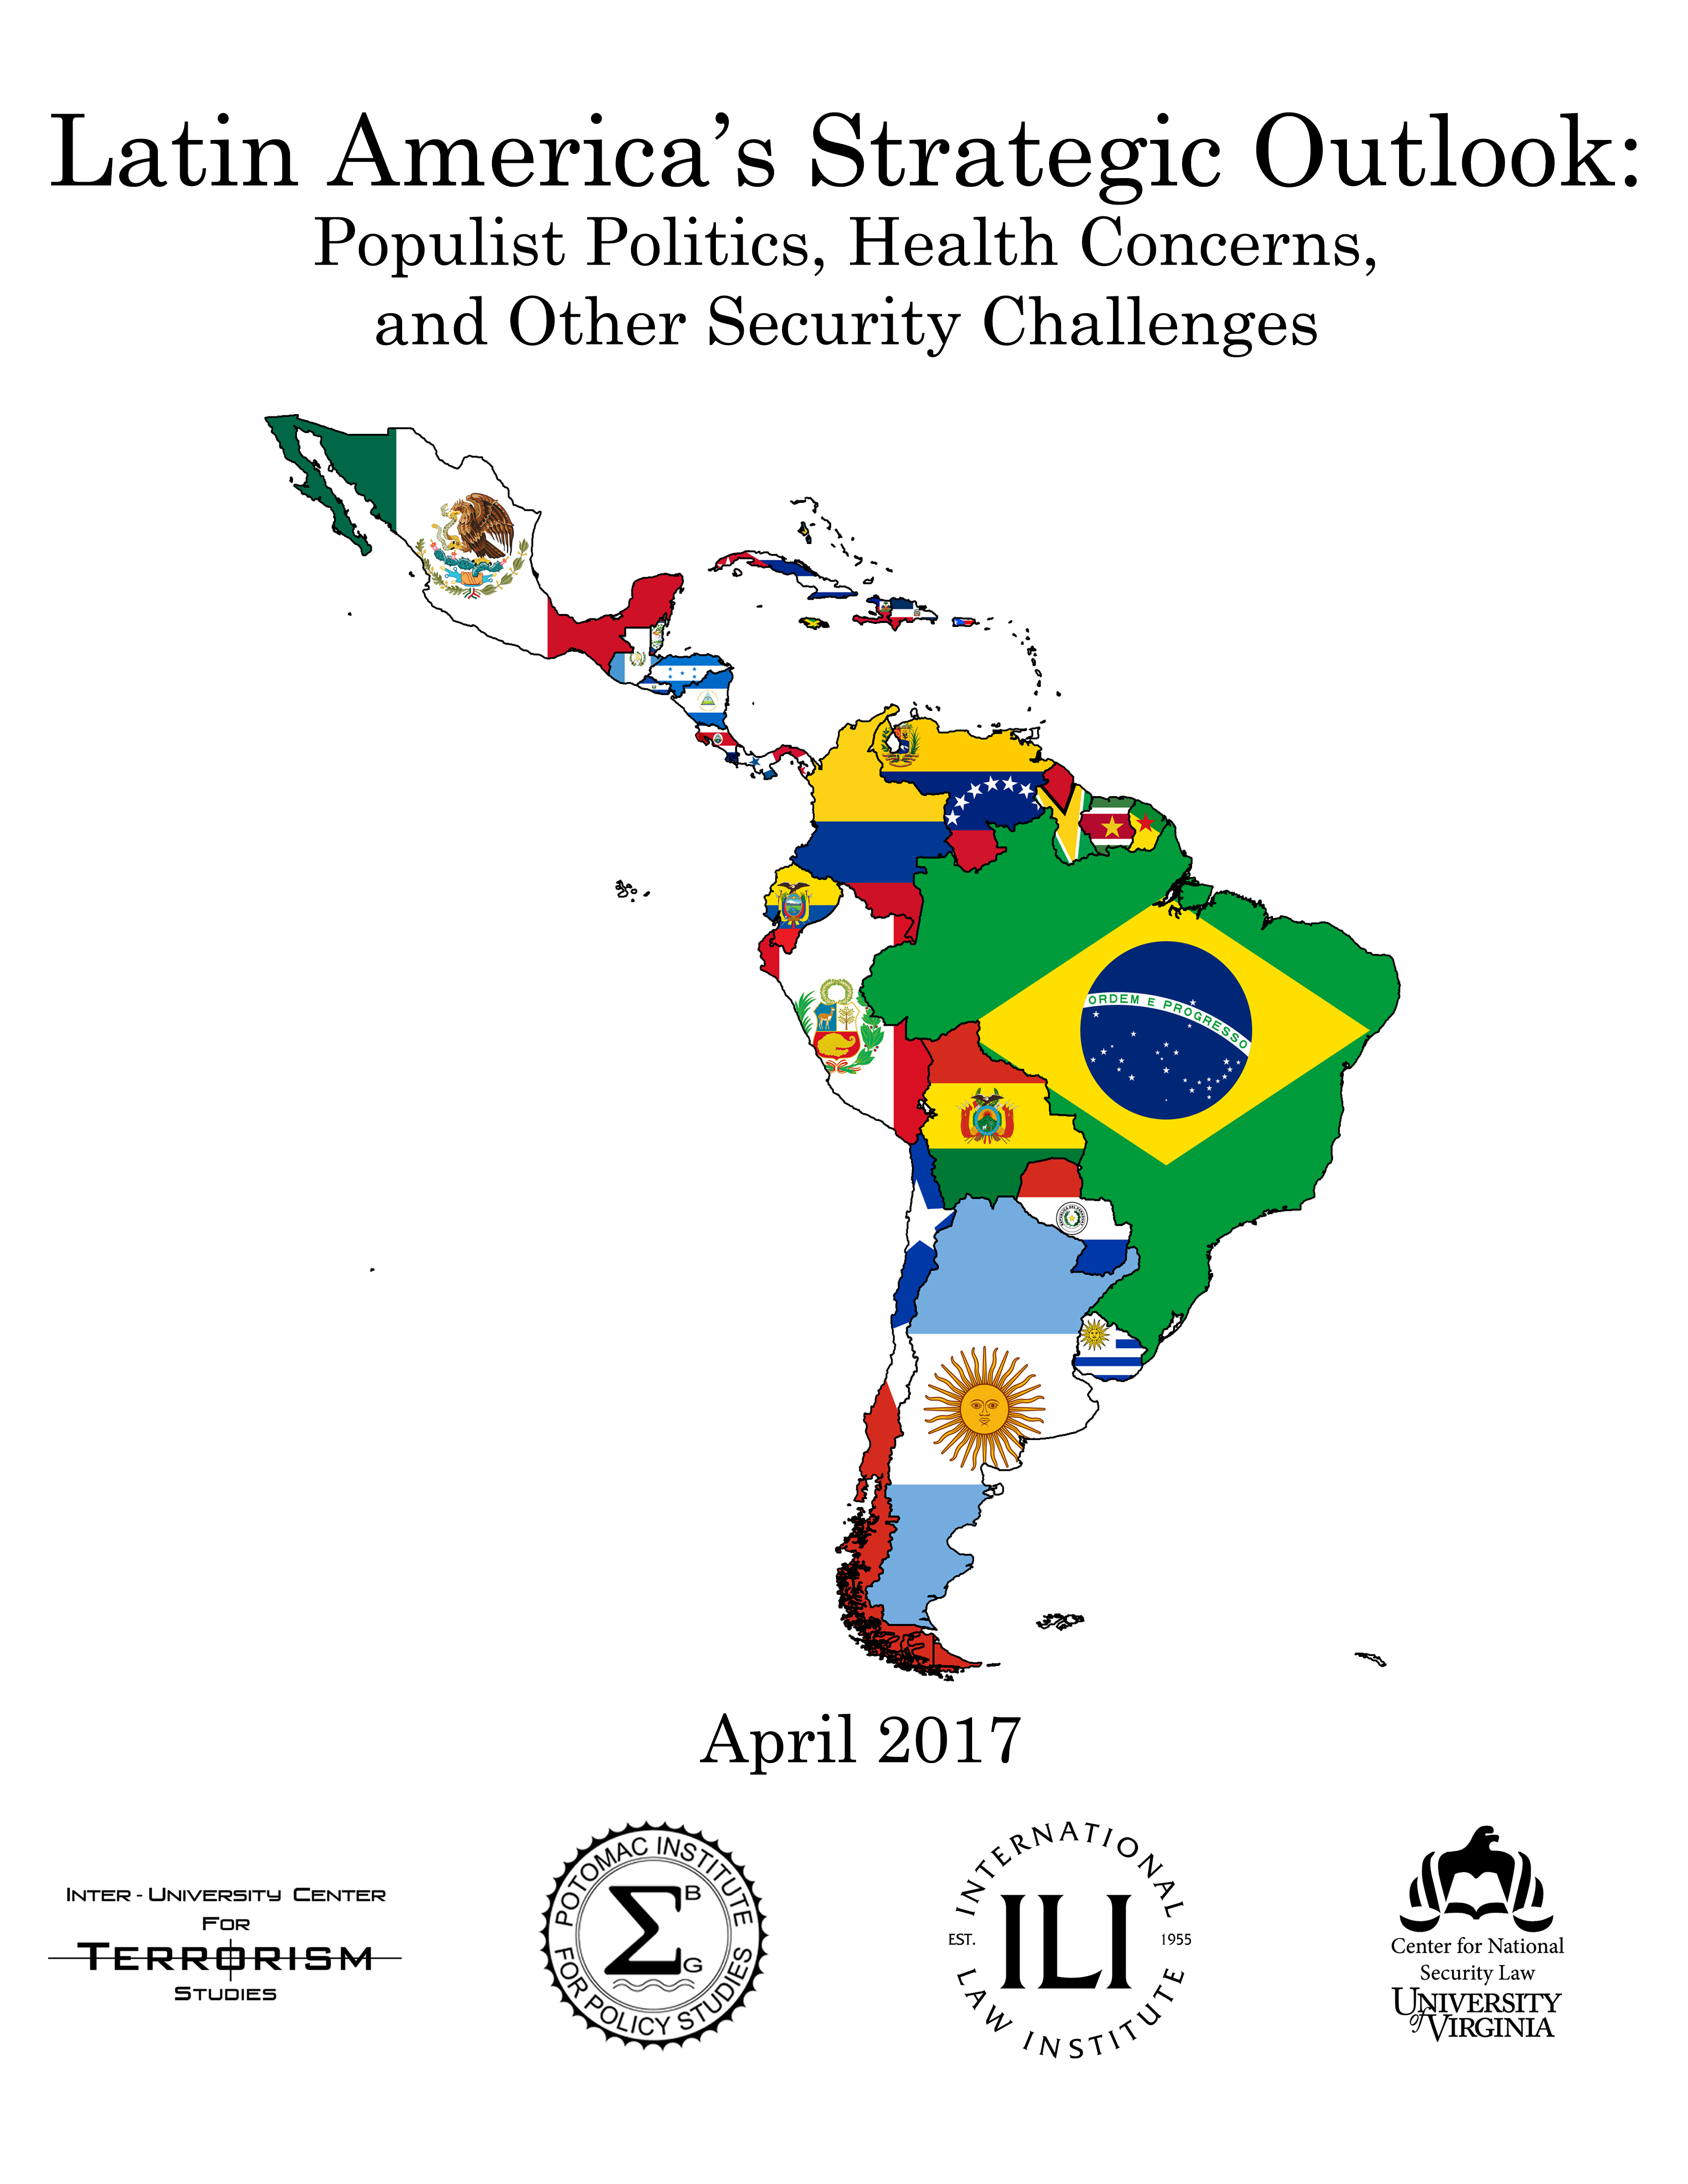 Latin America's Strategic Outlook: Populist Politics, Health Concerns, and Other Security Challenges